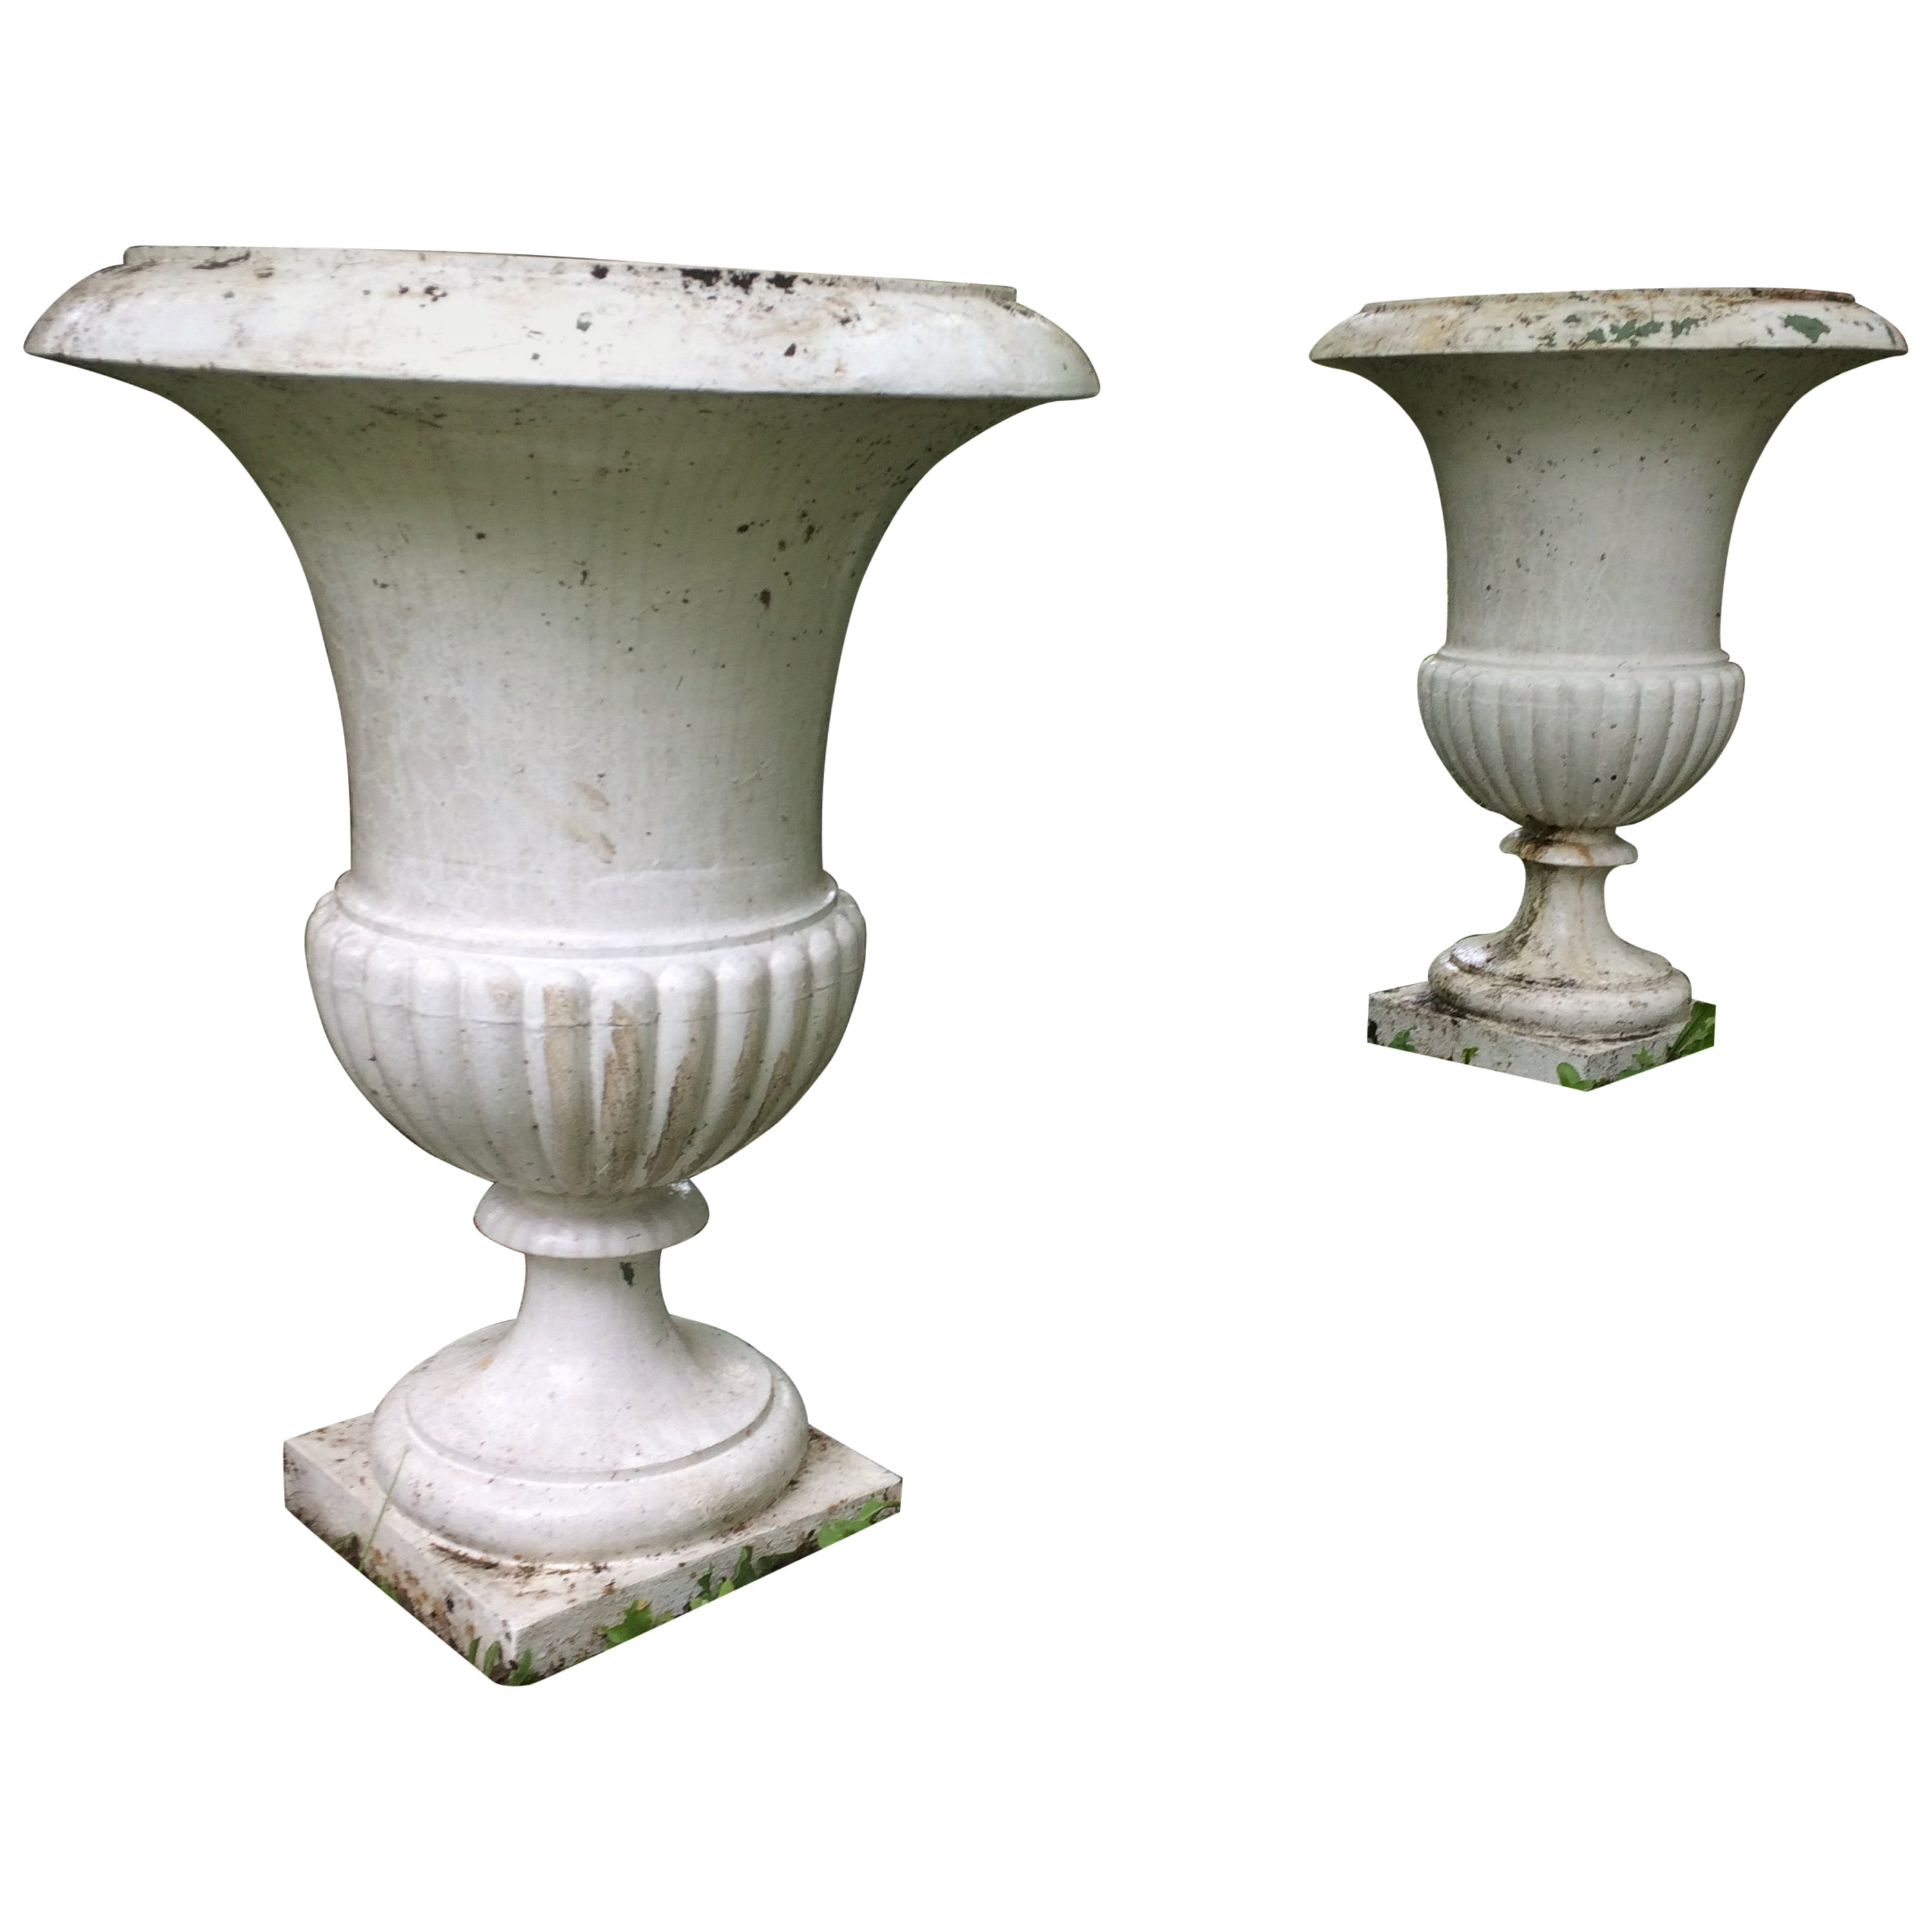 fda41e2a7eb8 Vases 'Pair' Urns in Iron in 1800s from France For Sale at 1stdibs